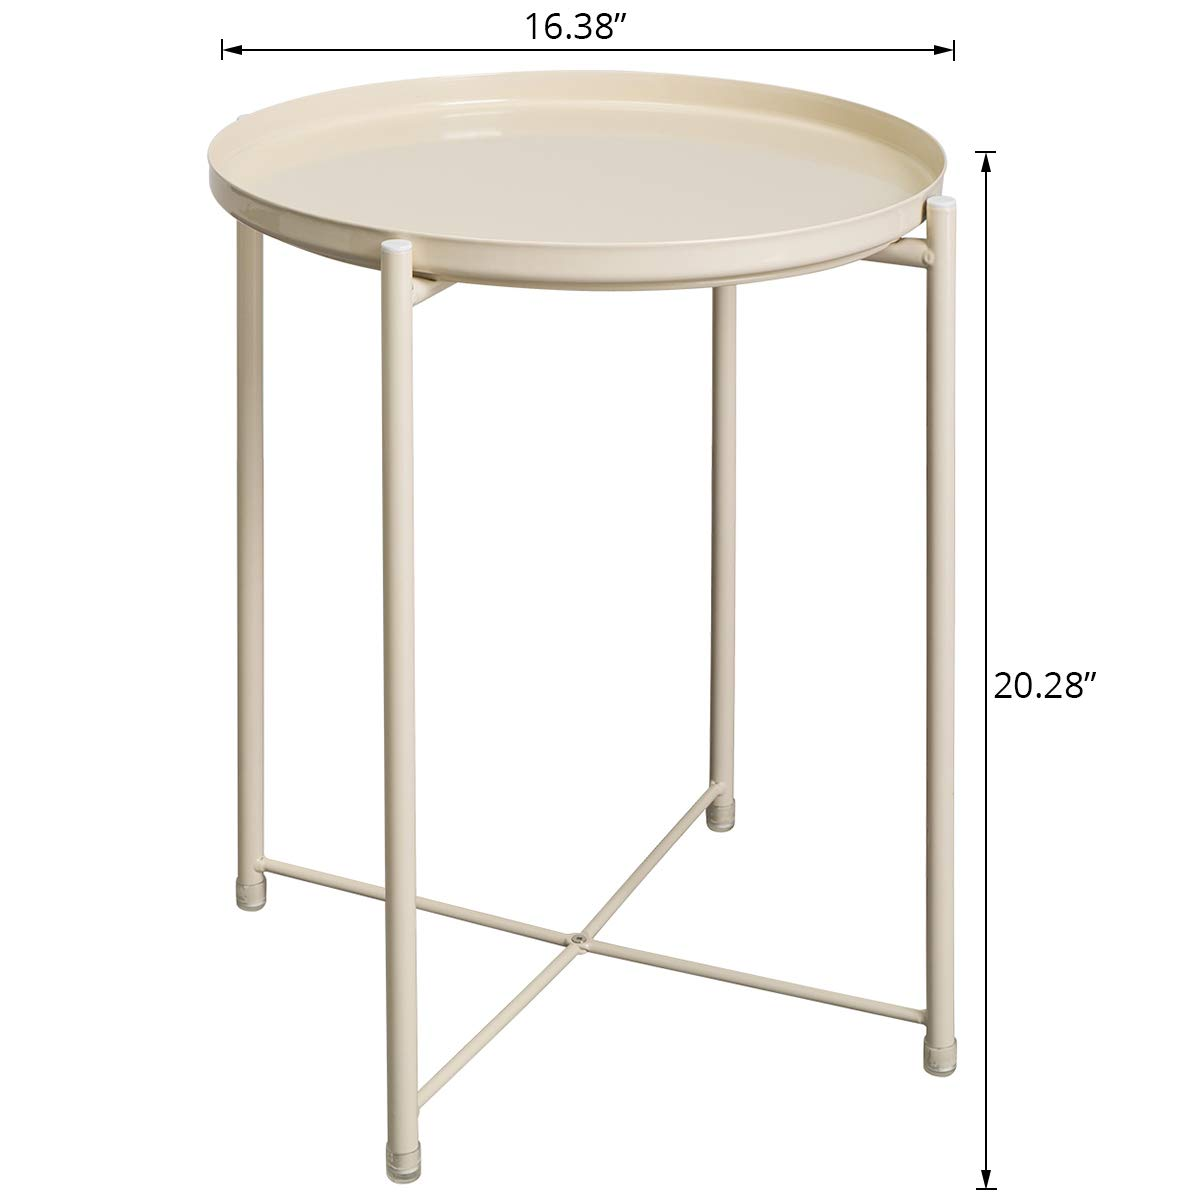 hollyhome folding tray metal end table sofa small bdl accent side round tables anti rust and waterproof outdoor indoor snack coffee bedside chest large cream wall clock glass